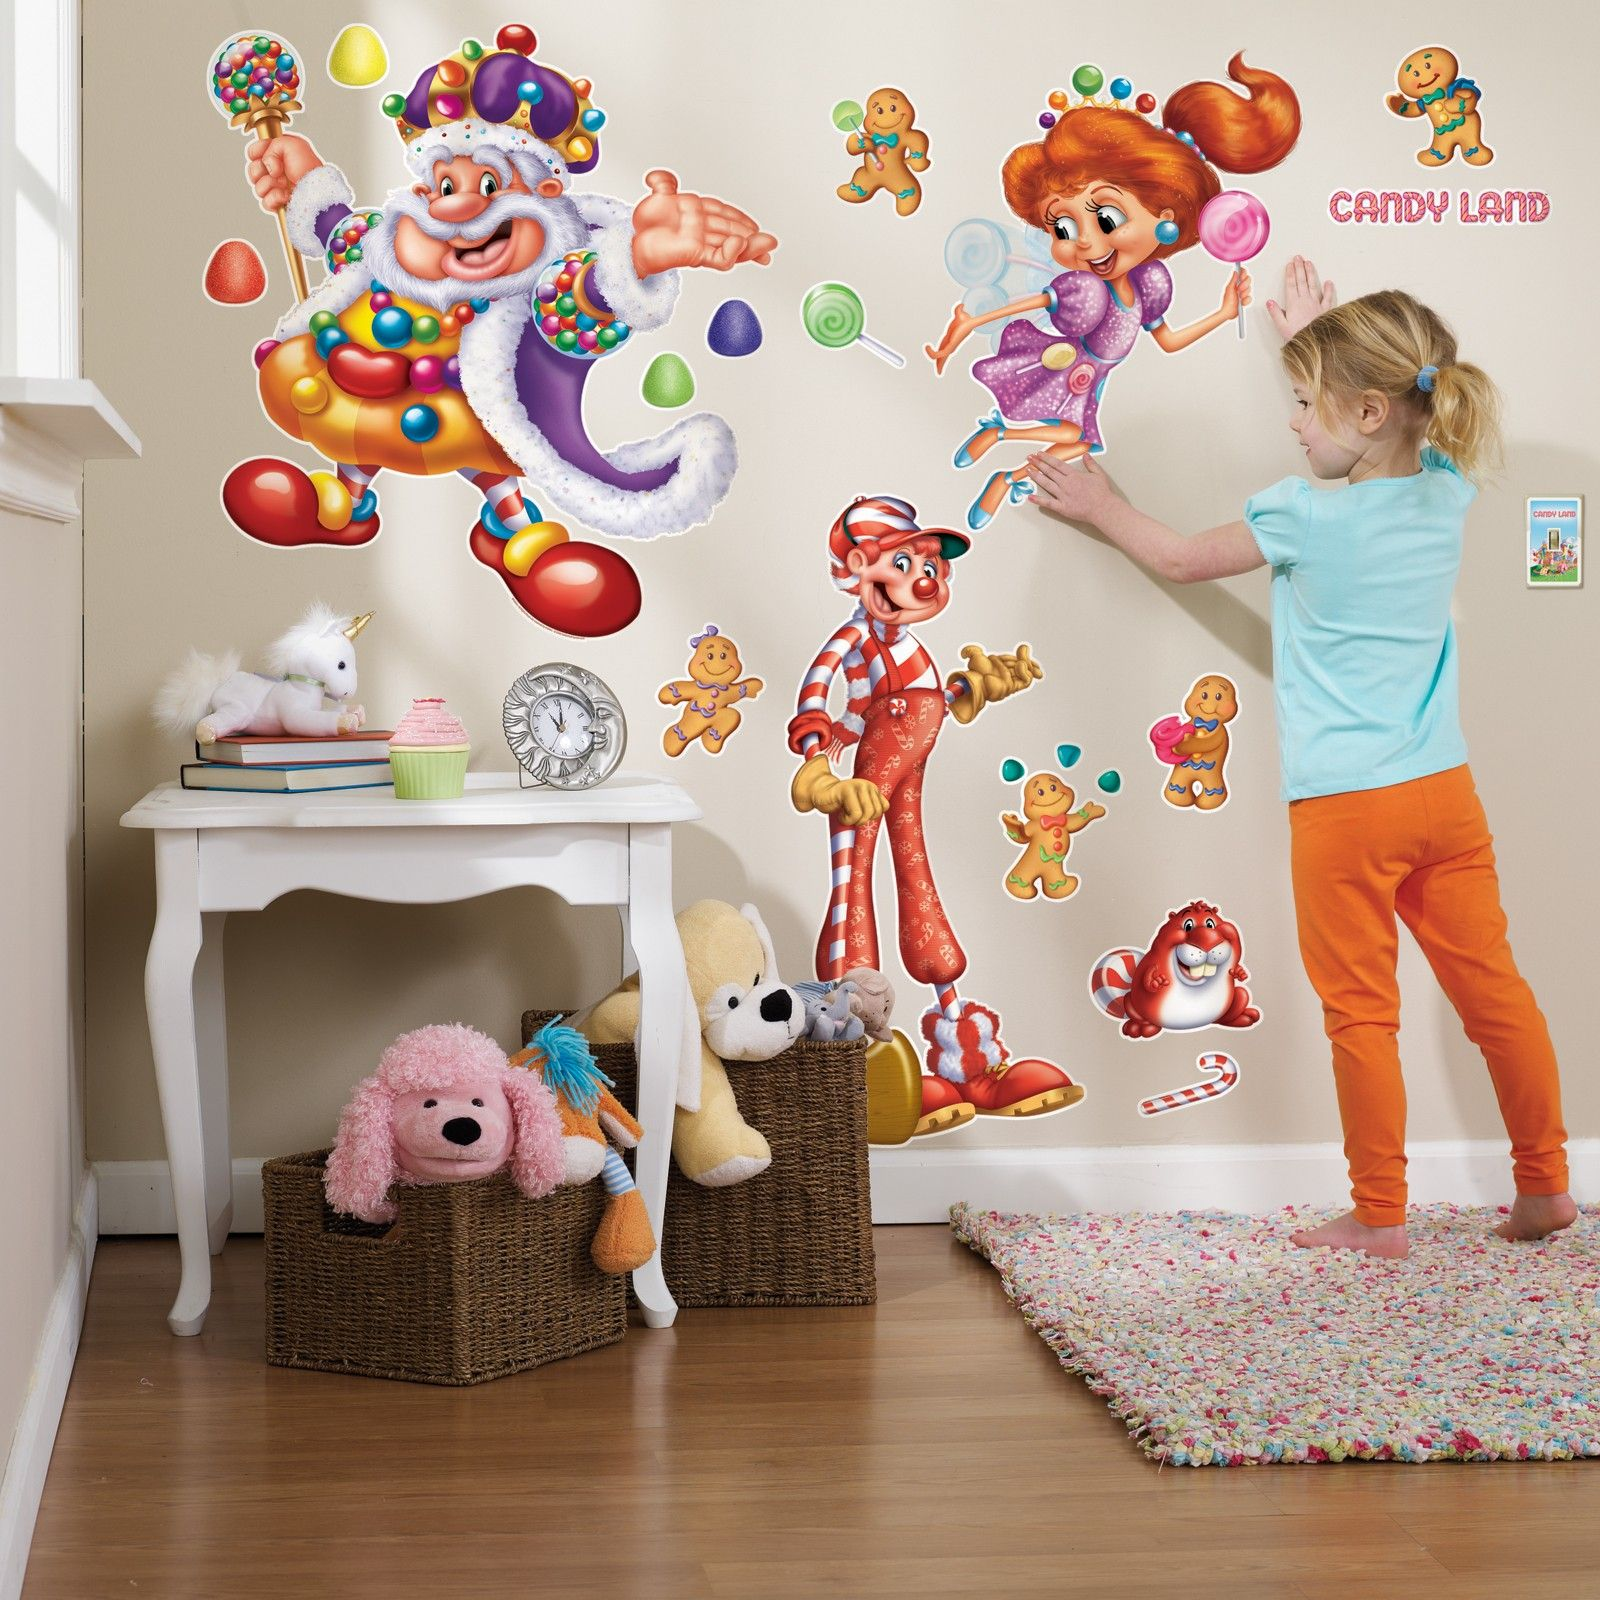 Candyland wall decals for classroom | School Stuff ...